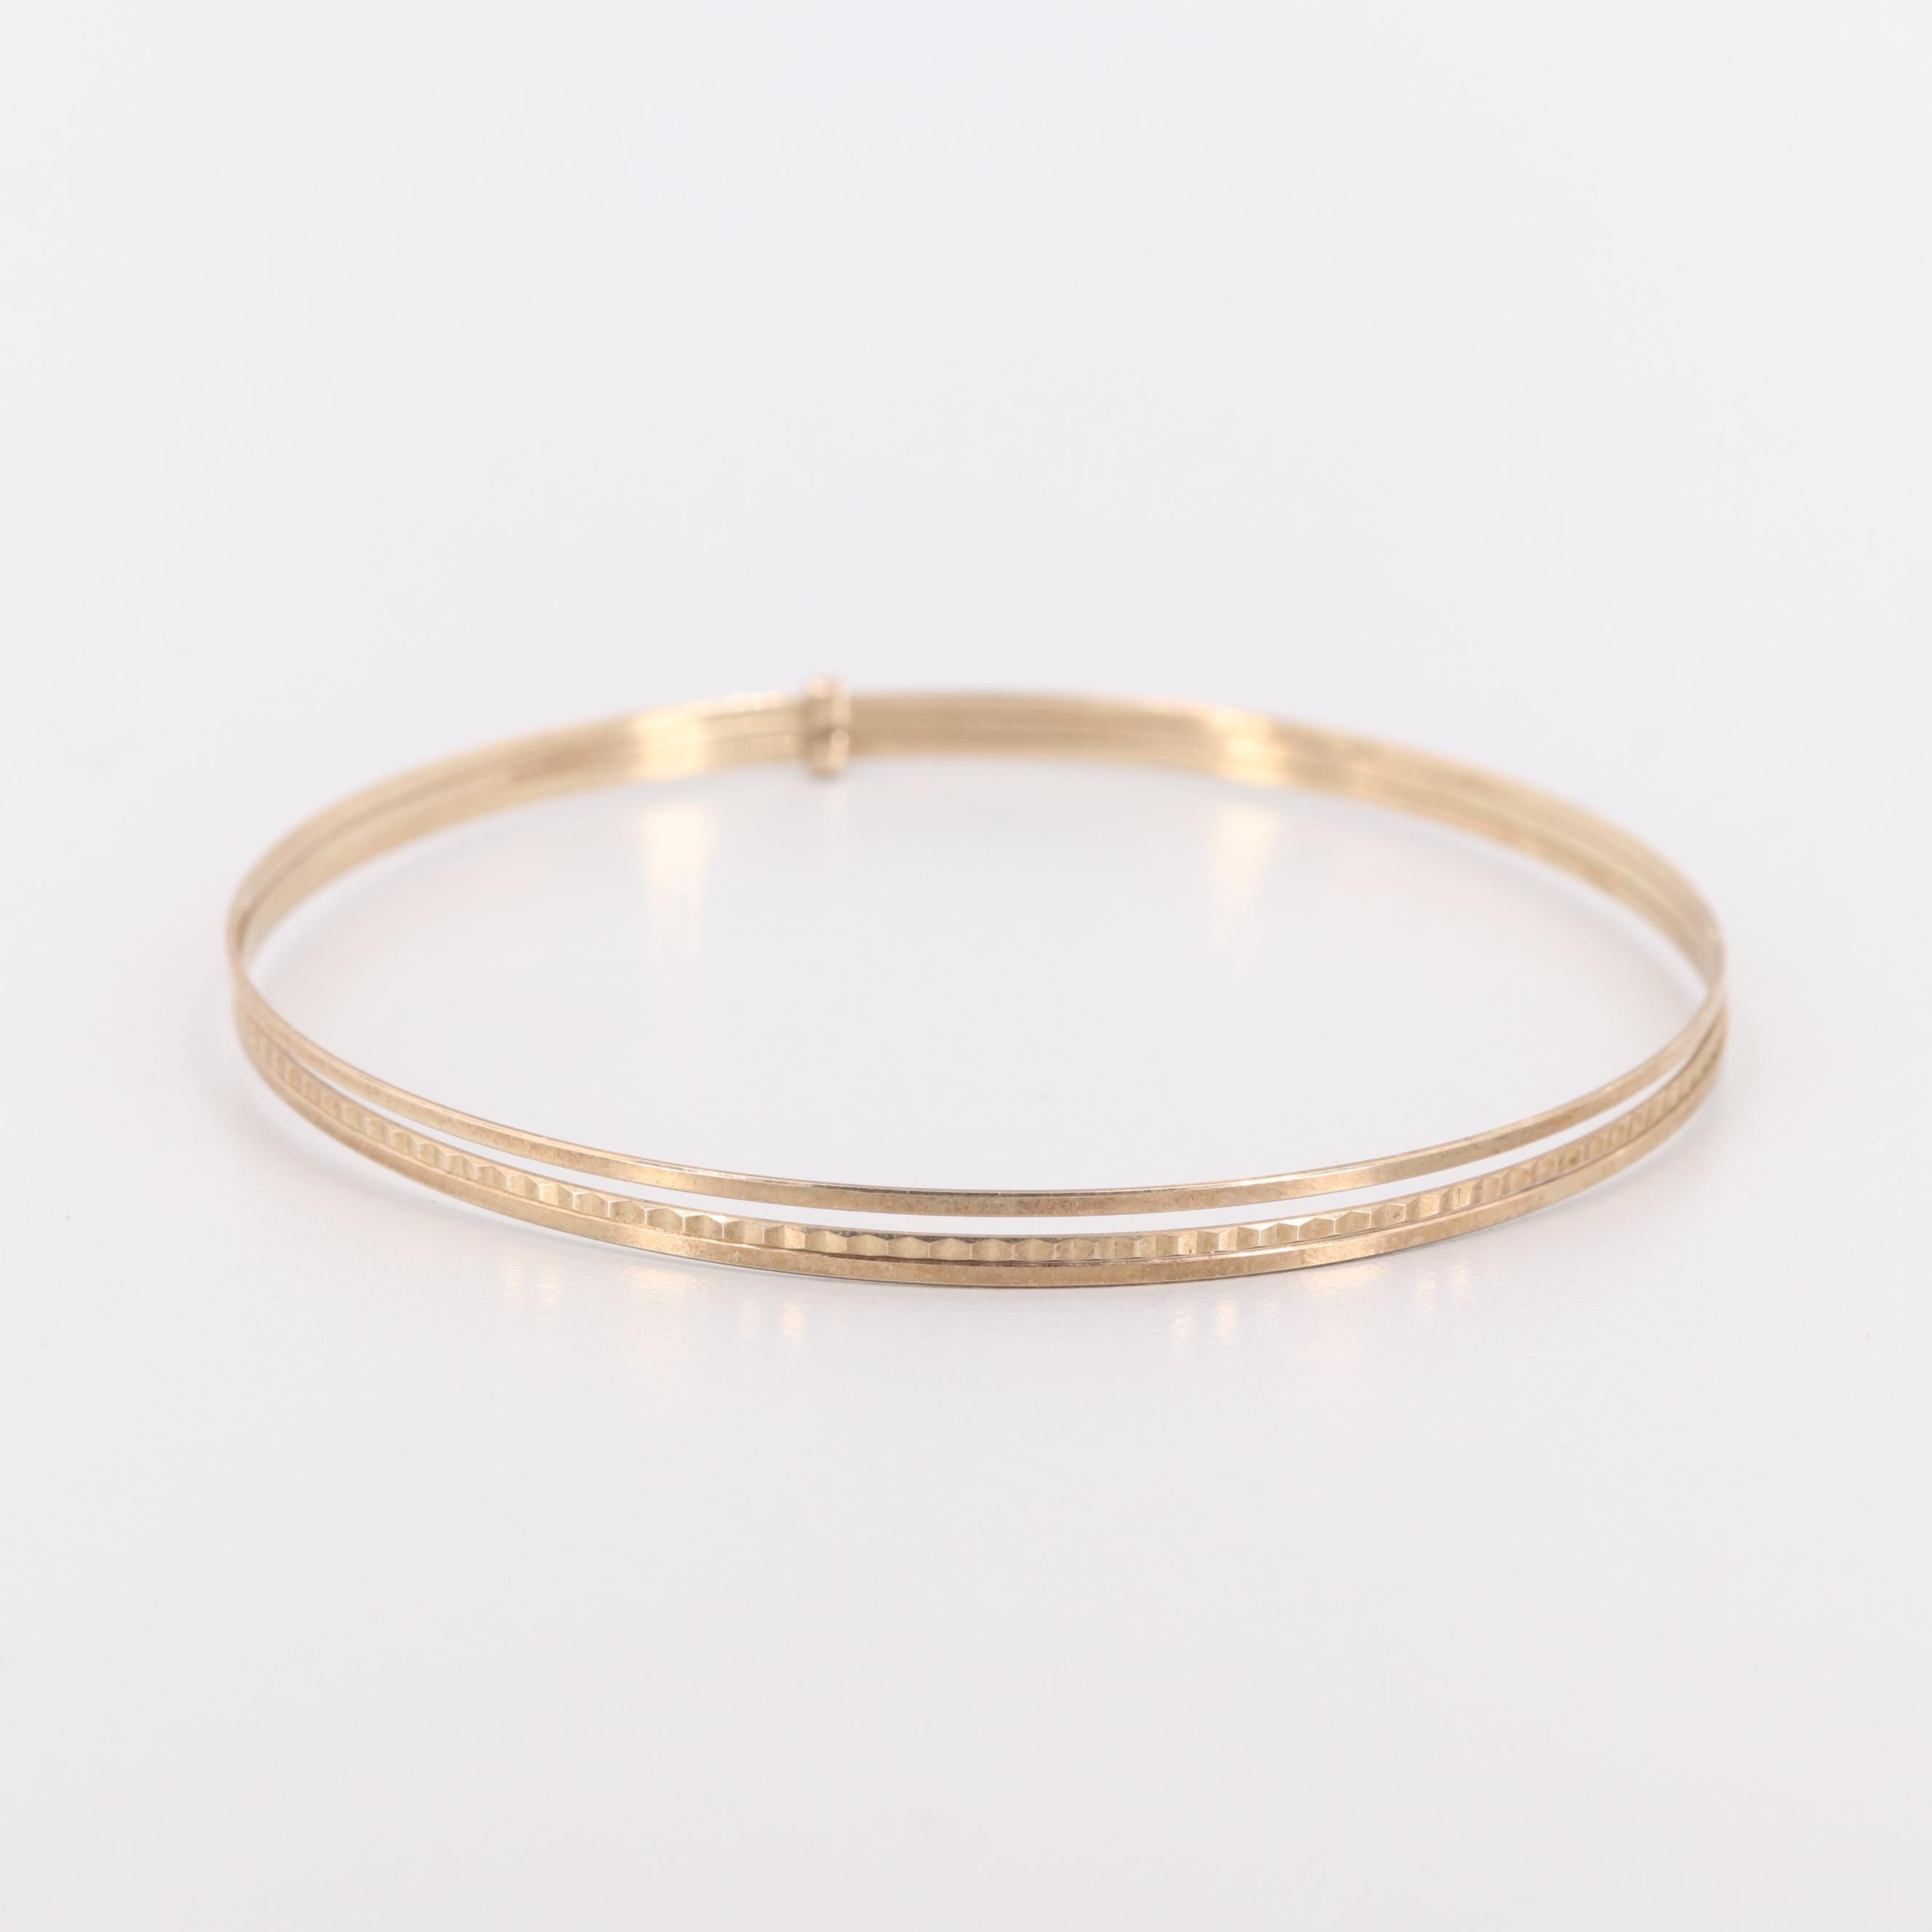 Vintage 8K Yellow Gold Bangle Bracelet